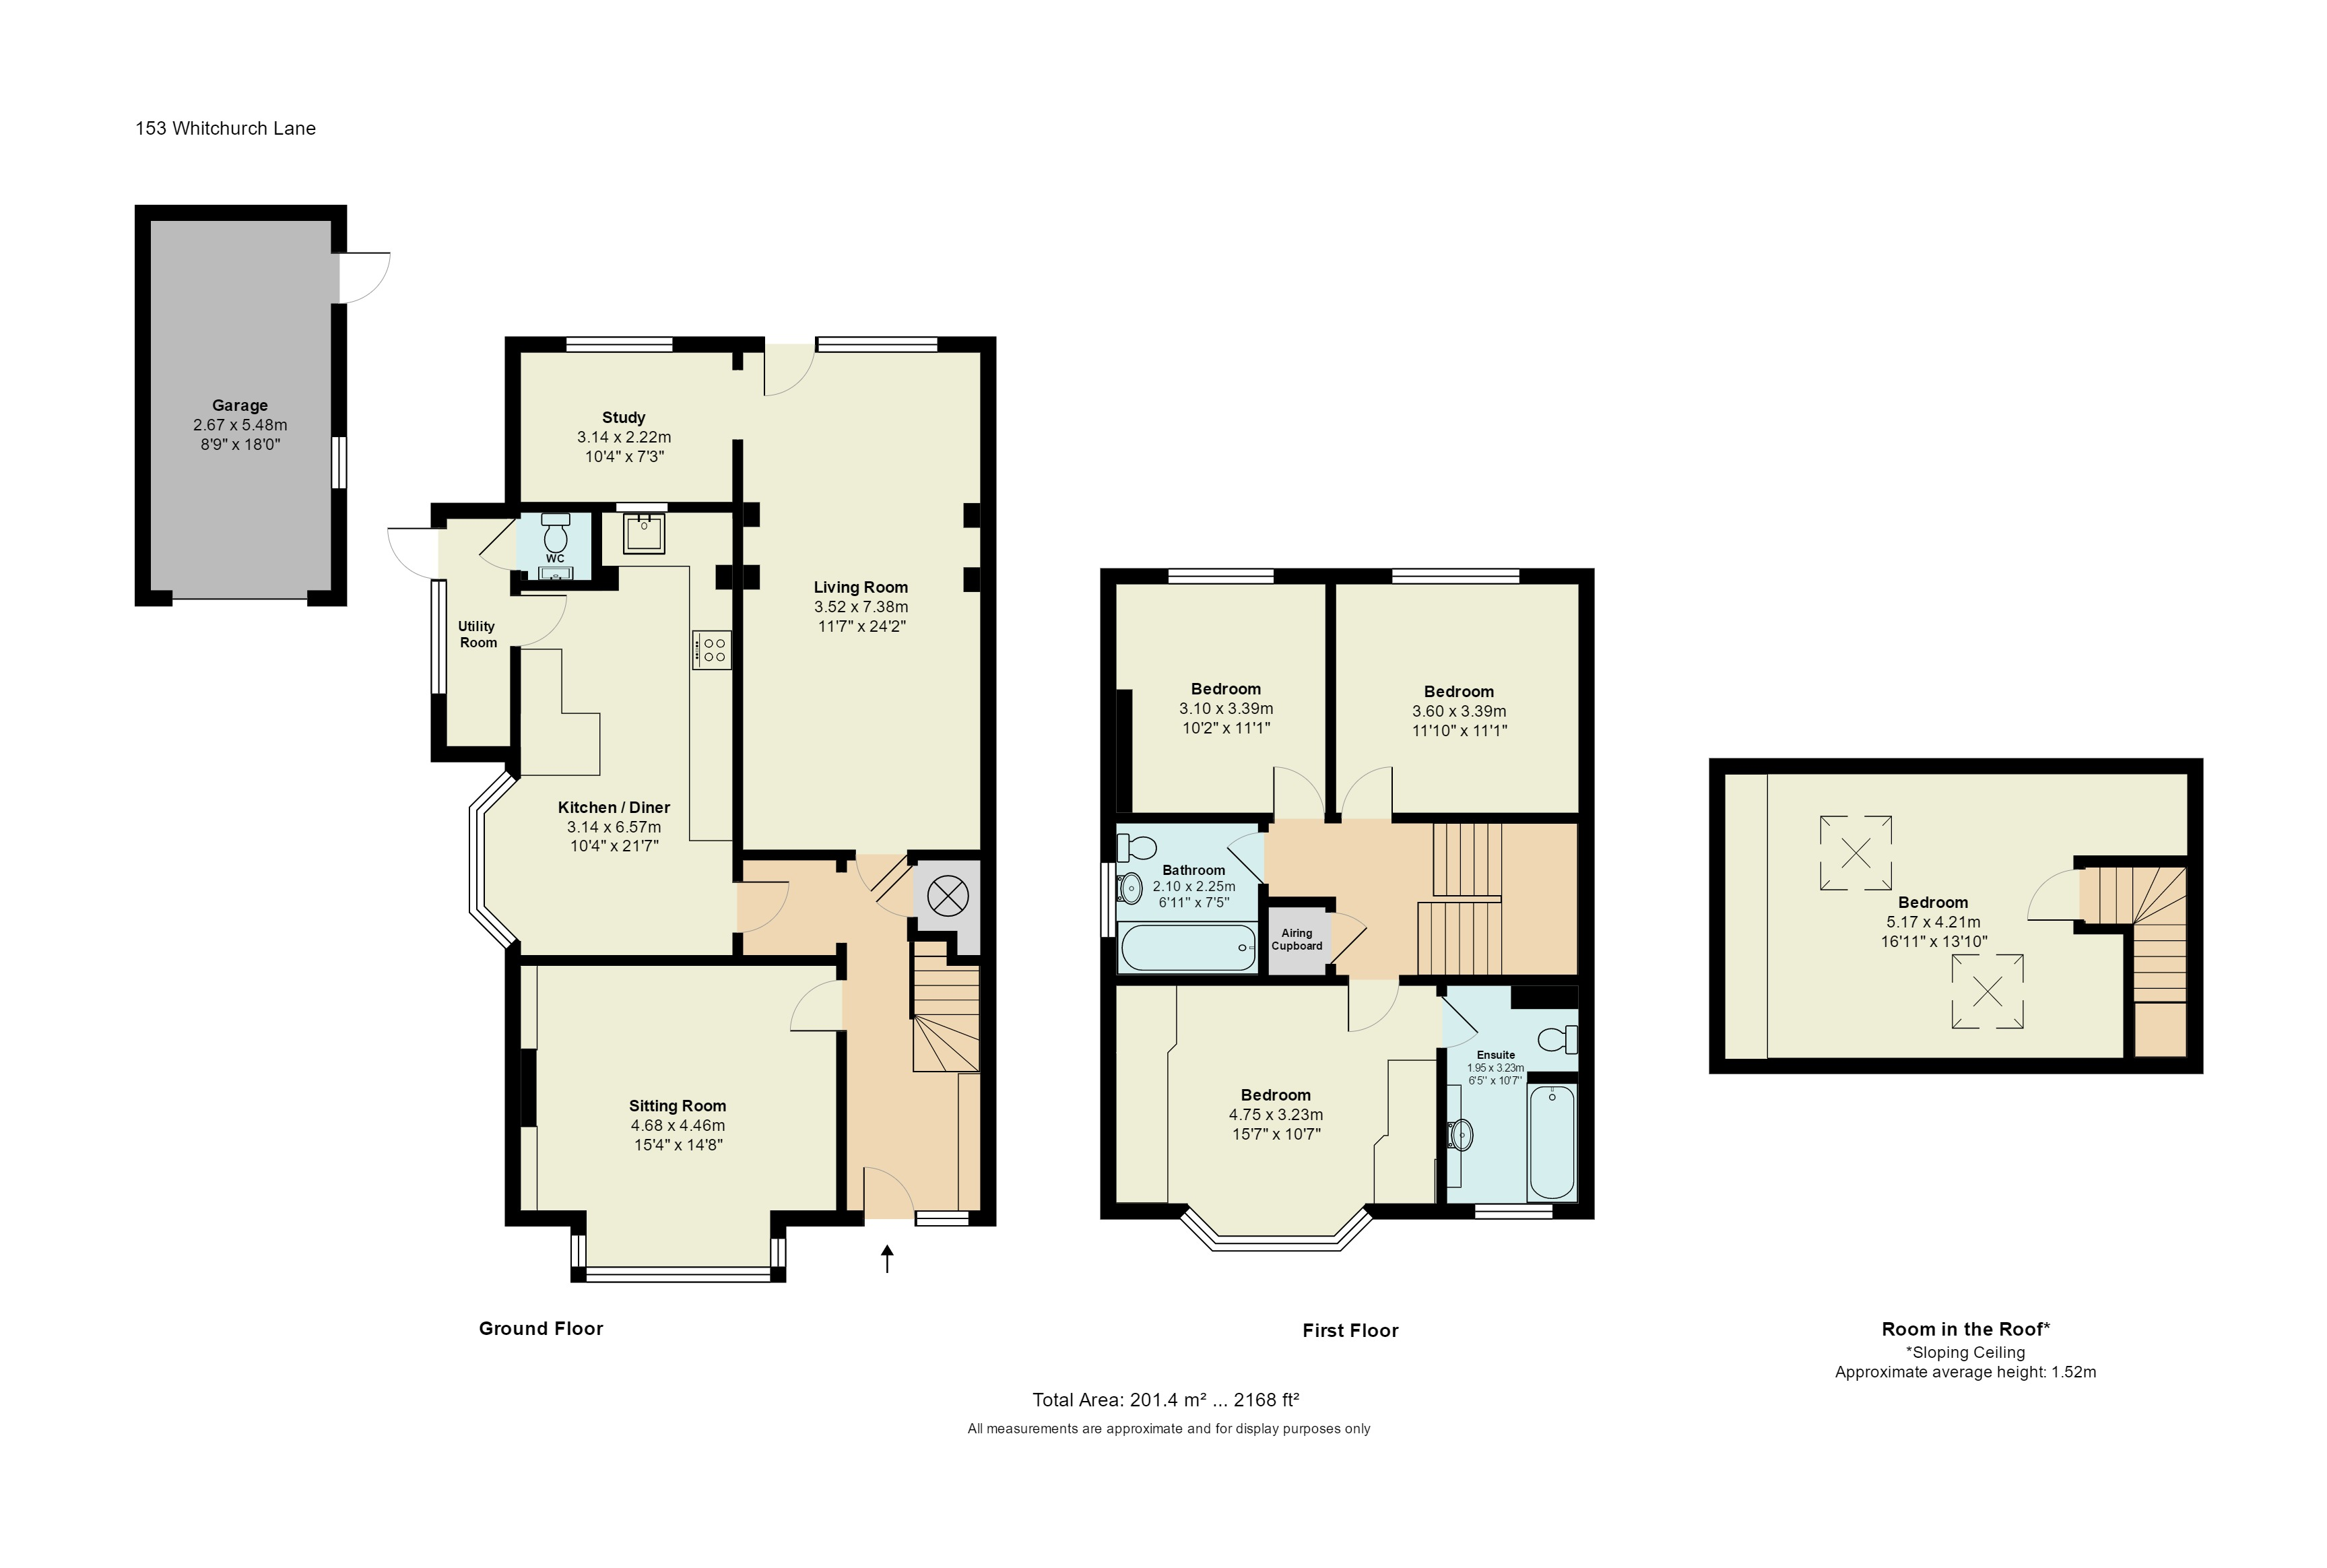 4 Bedroom Property For Sale In Whitchurch Lane Guide Price 785 000